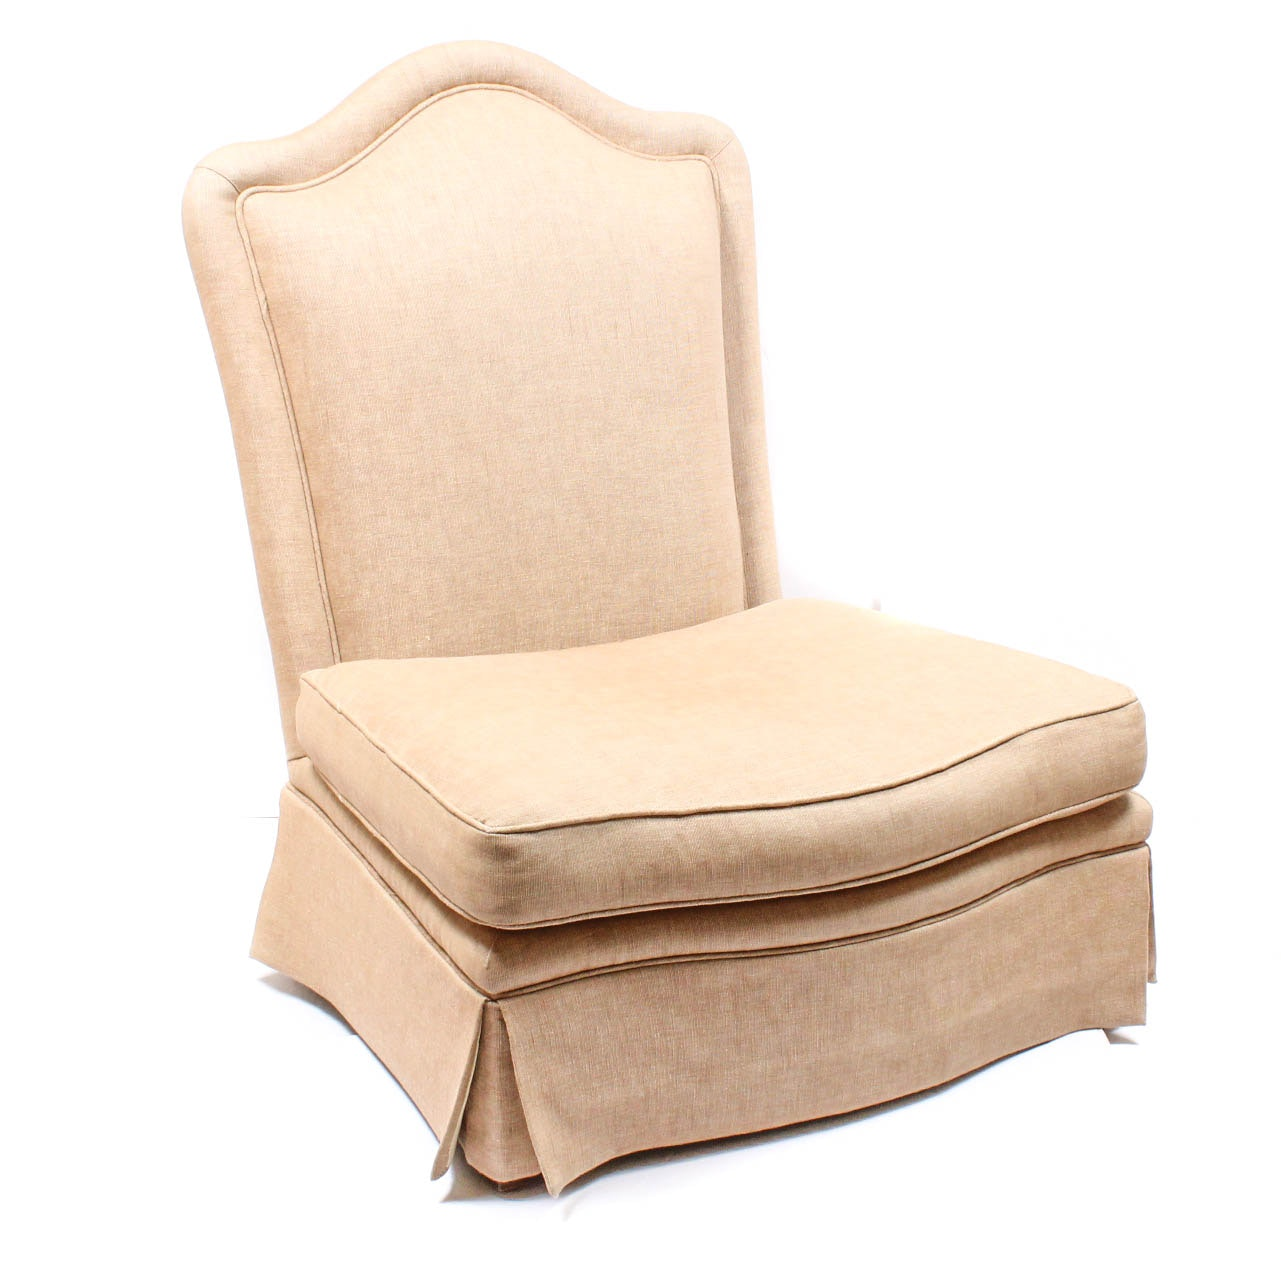 Upholstered Chair by Baker